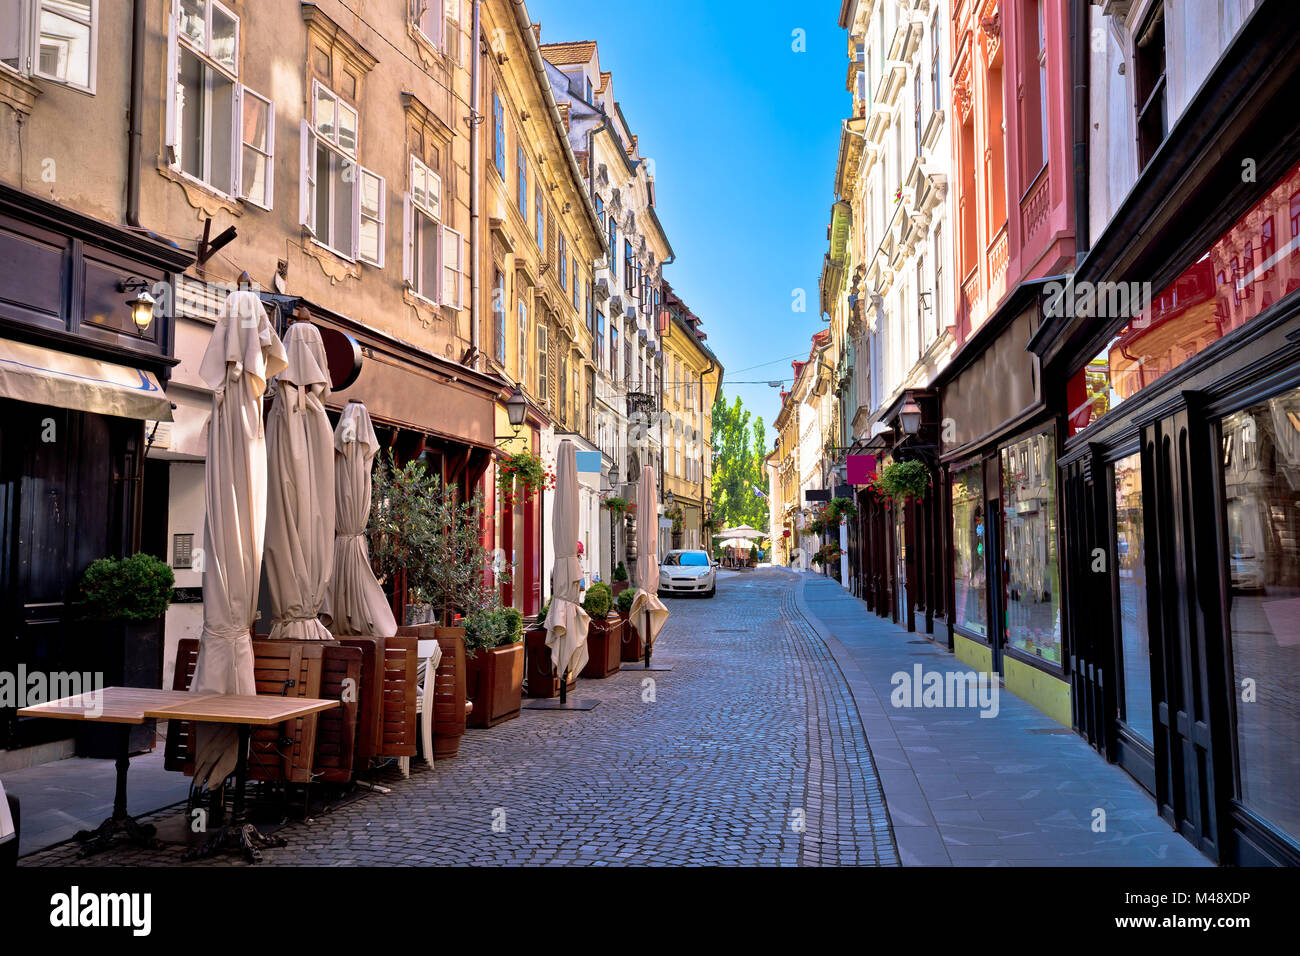 Old Ljubljana cobbled street view - Stock Image